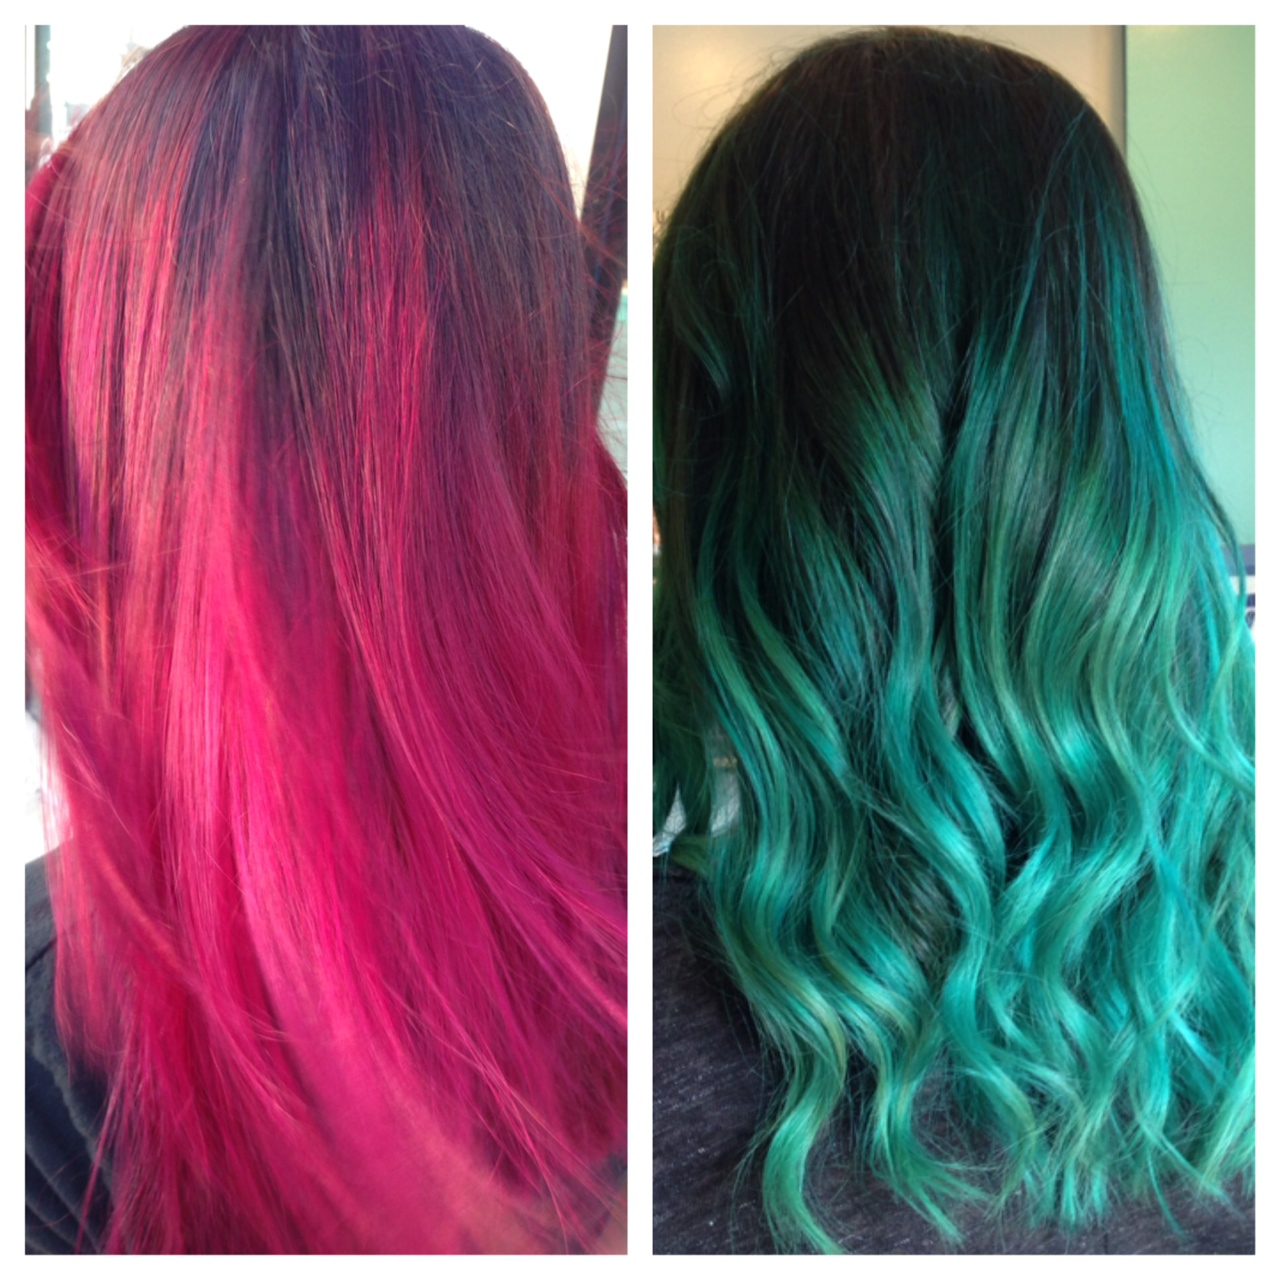 TRANSFORMATION: Pink To Teal